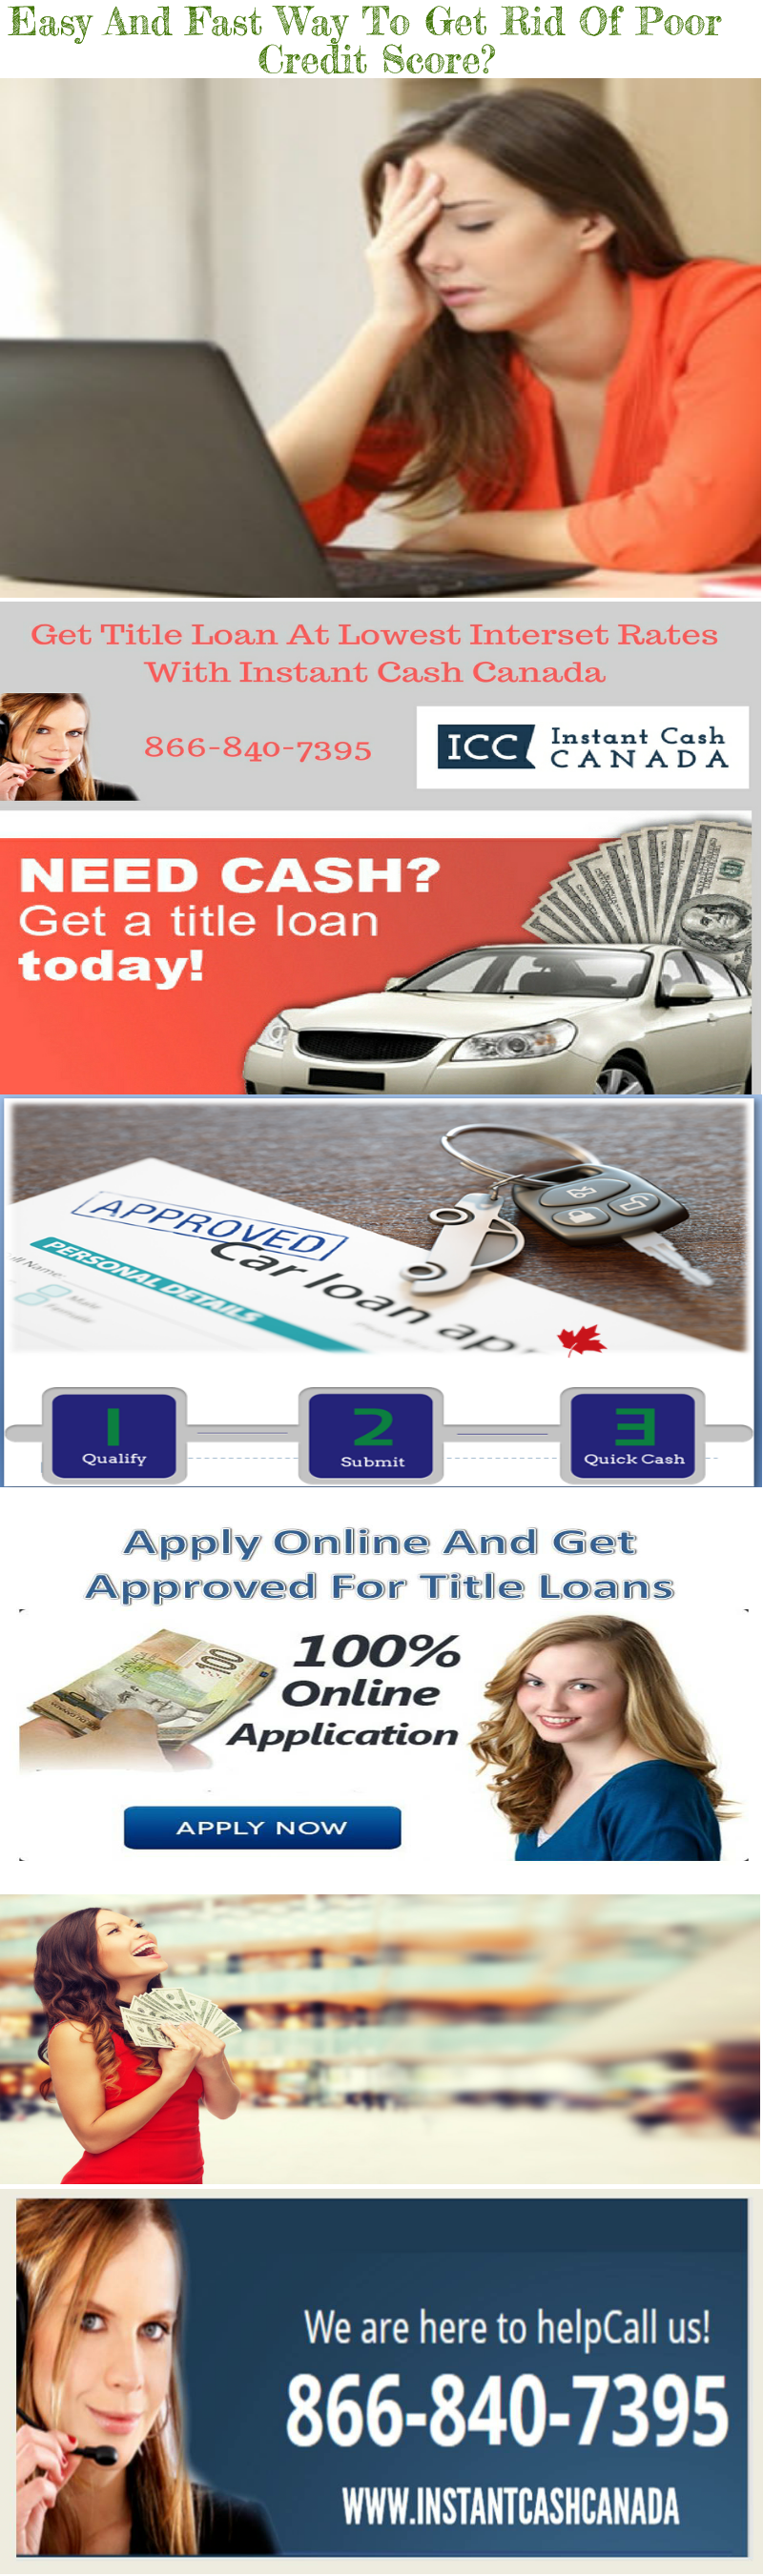 Citrus heights payday loan photo 8